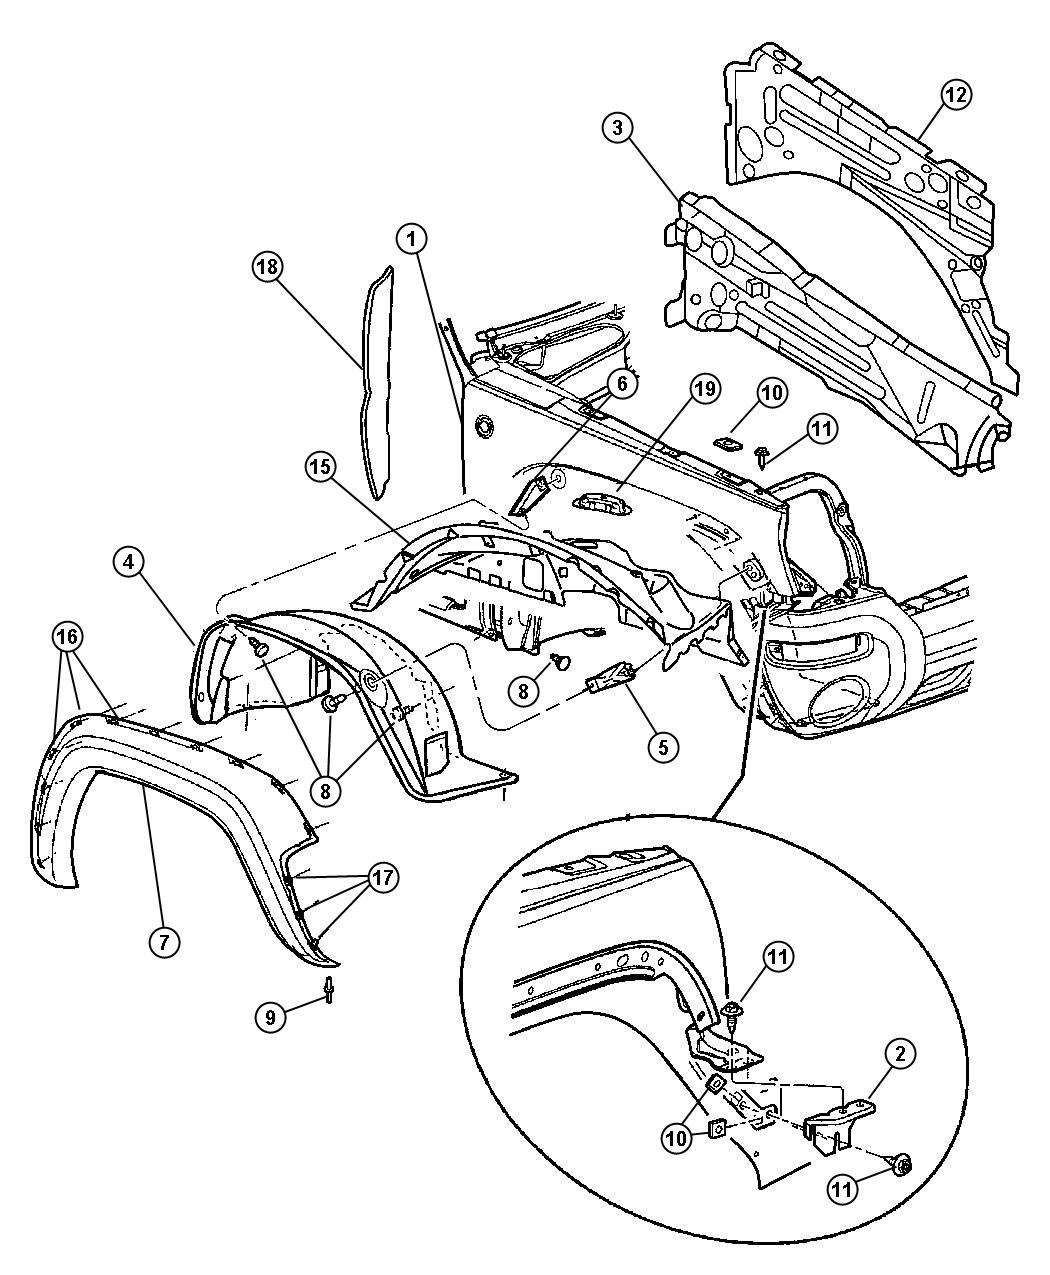 2004 Jeep Grand Cherokee Parts Diagram. Jeep. Auto Wiring